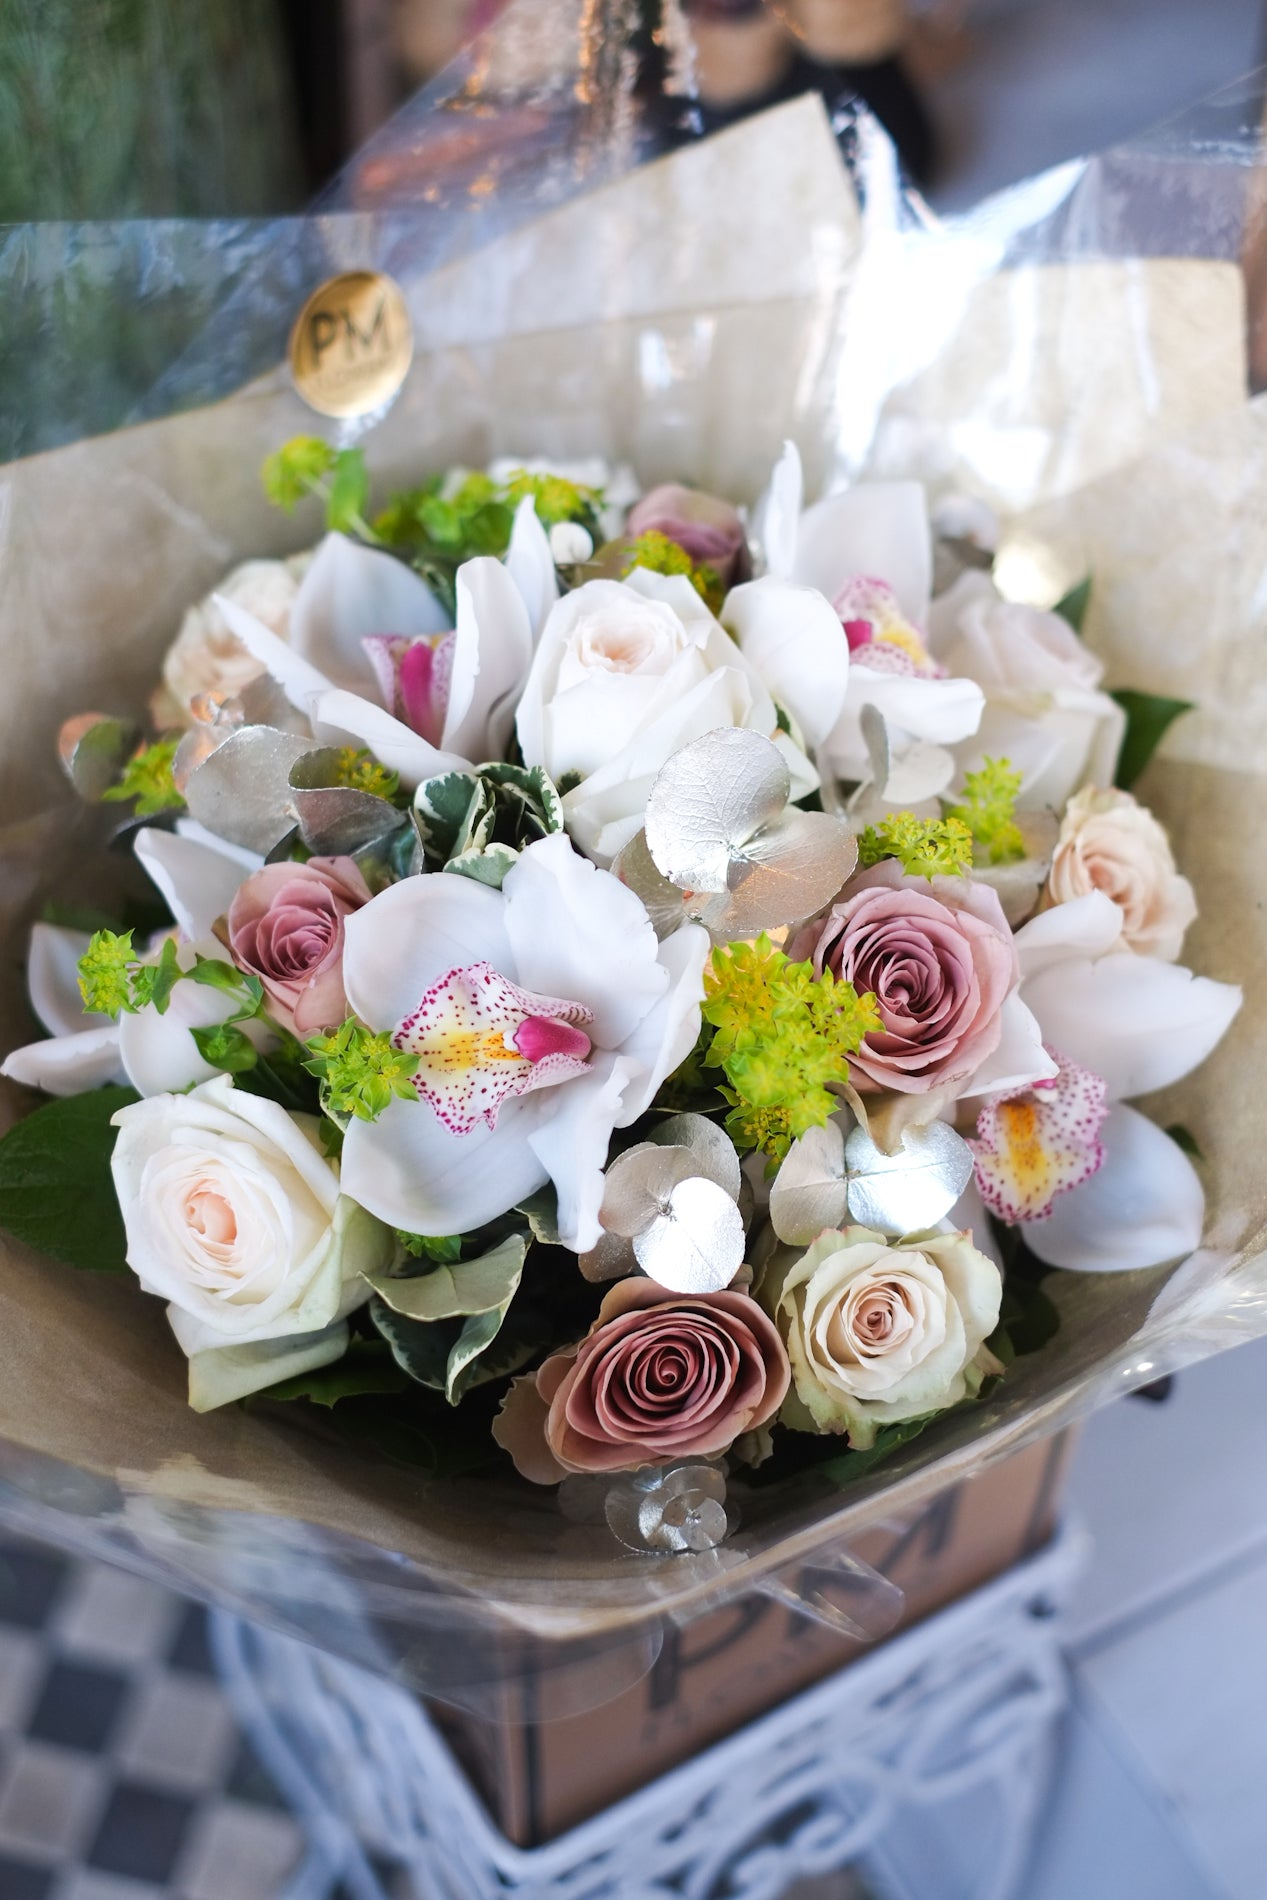 Sweet fragrance and rich textures is what this flower bouquet exudes. A combination of premium scented garden roses balanced with antique lilac roses with accents of silver, beige and greens.